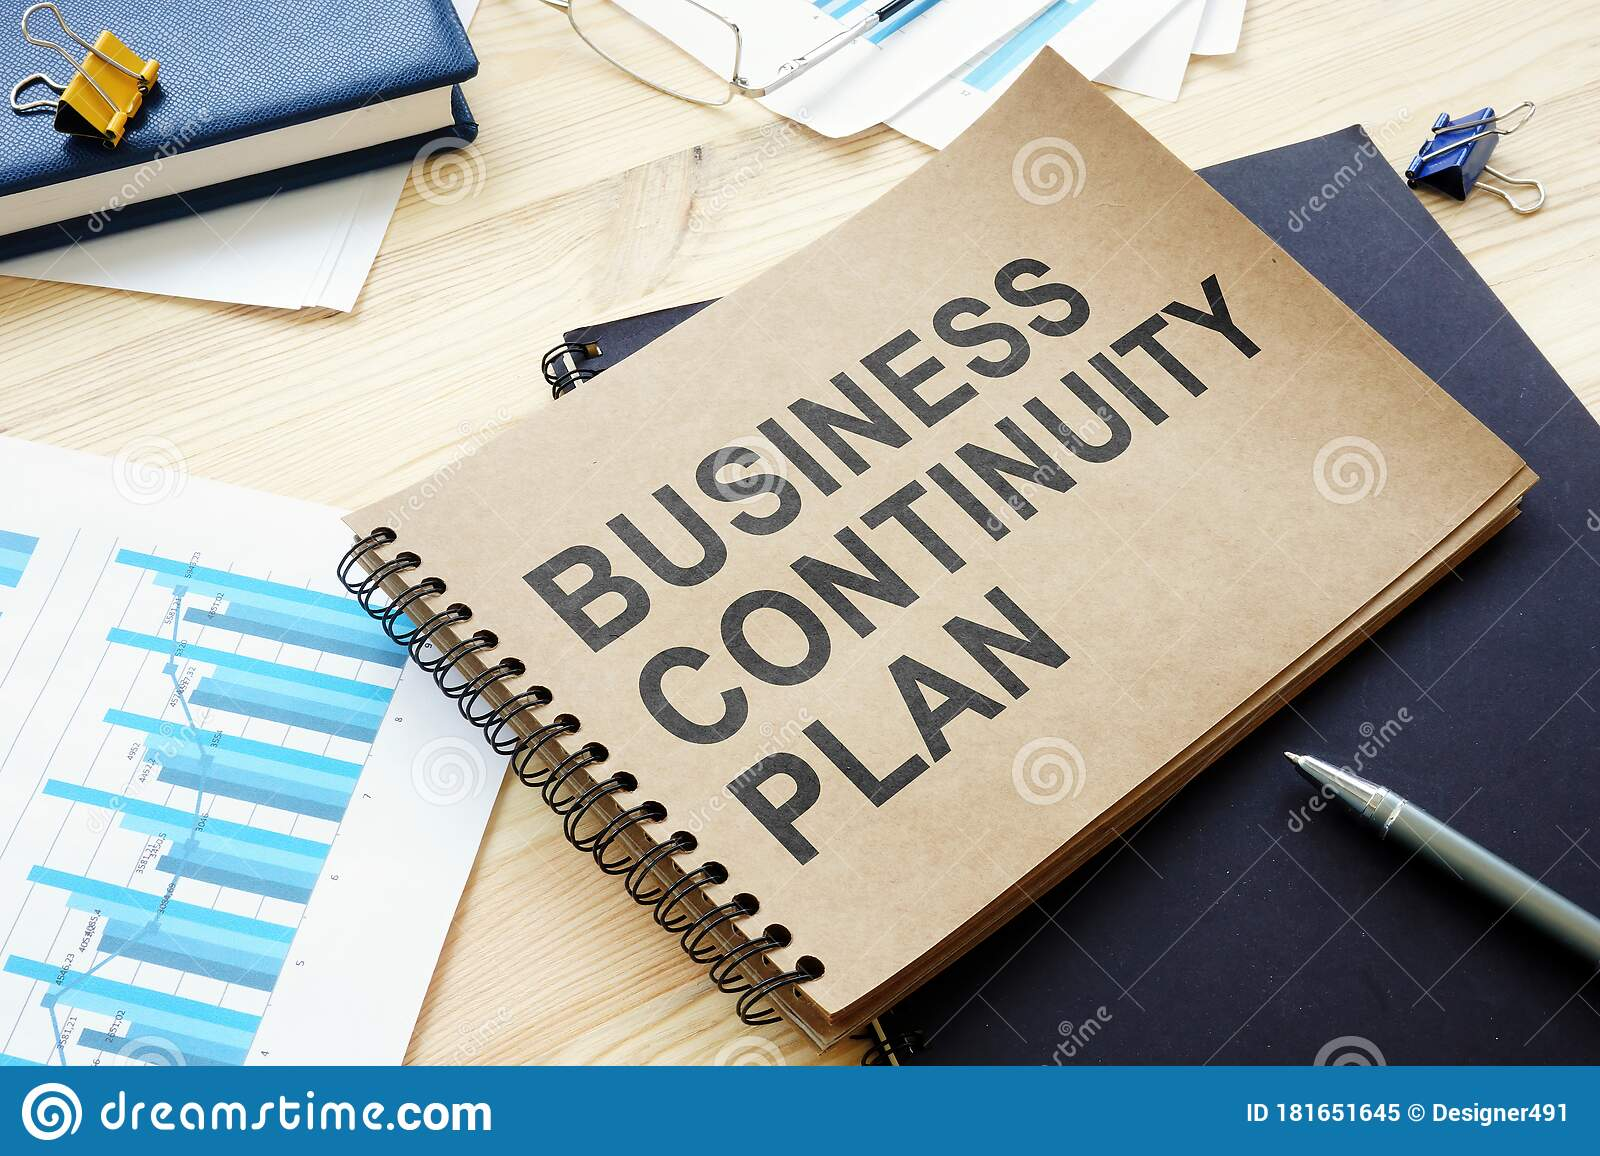 Help desk business continuity plan